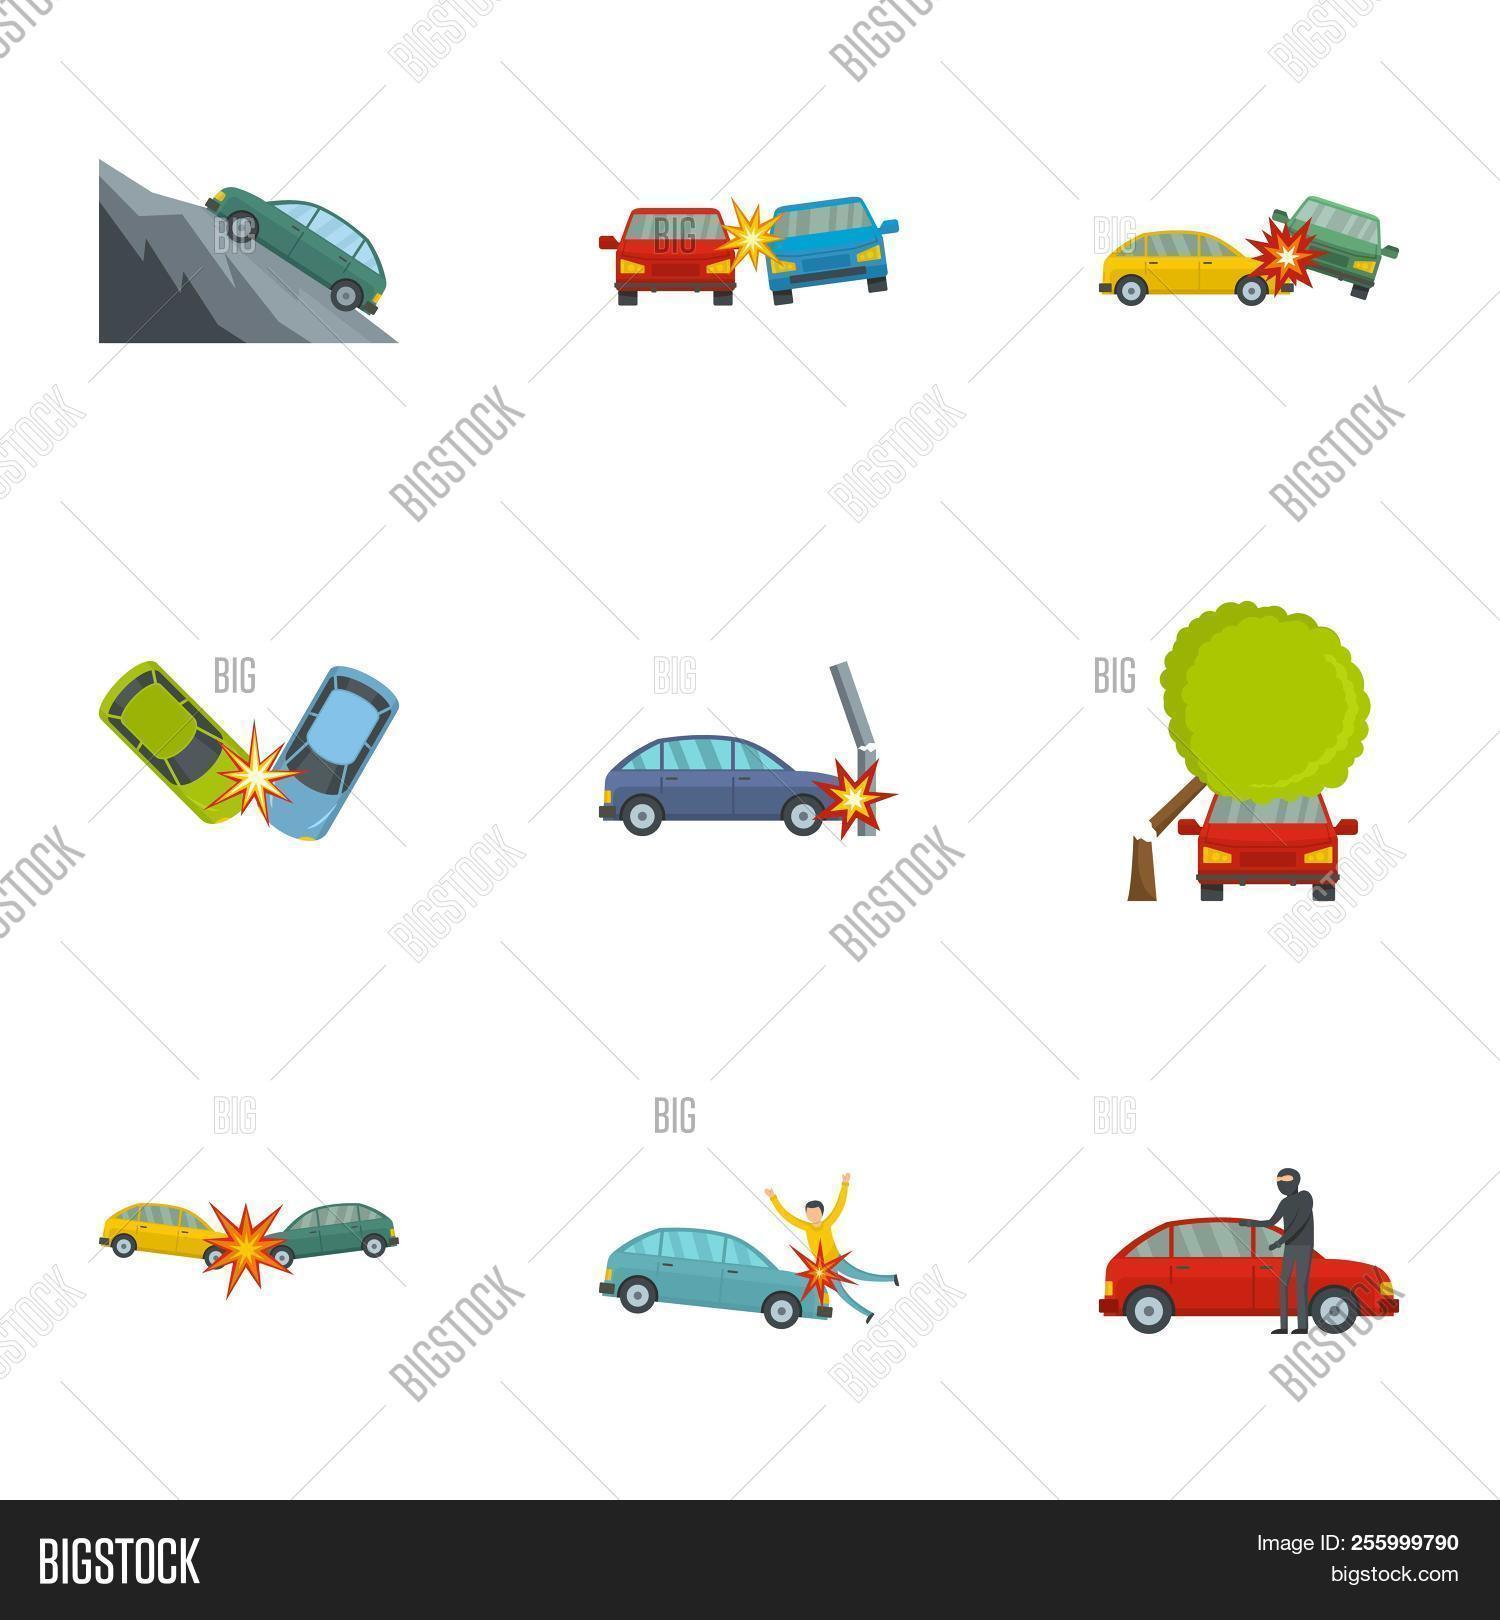 accident,adjustment,auto,automobile,automotive,brake,business,car,cartoon,checklist,city,collision,crash,damage,danger,death,diagnostic,engine,fire,fix,garage,icons,illustration,injury,isolated,maintenance,mechanic,motor,oil,pedestrian,repairshop,road,roam,set,shock,shop,smoke,spanner,speed,spray,stroke,technology,traffic,transport,transportation,vehicle,work,wreck,zone